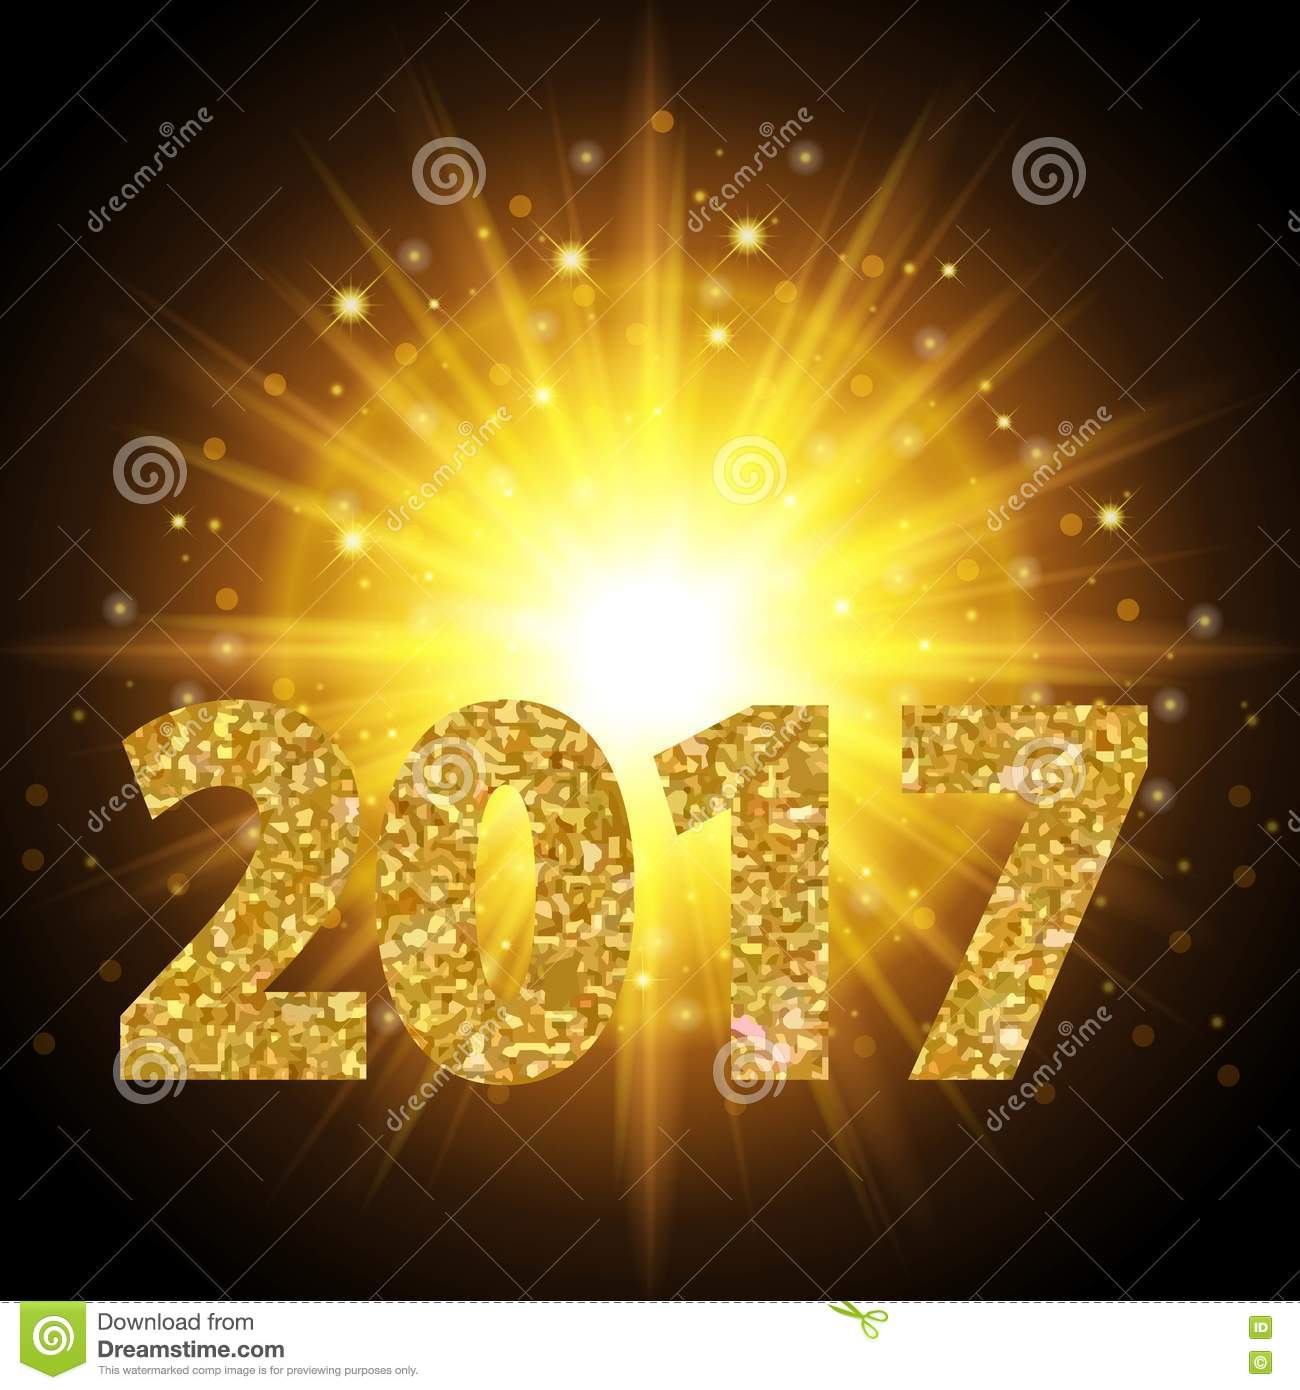 New Year 2017 Text Gold Color  Bright Light  Background Realistic     Download comp